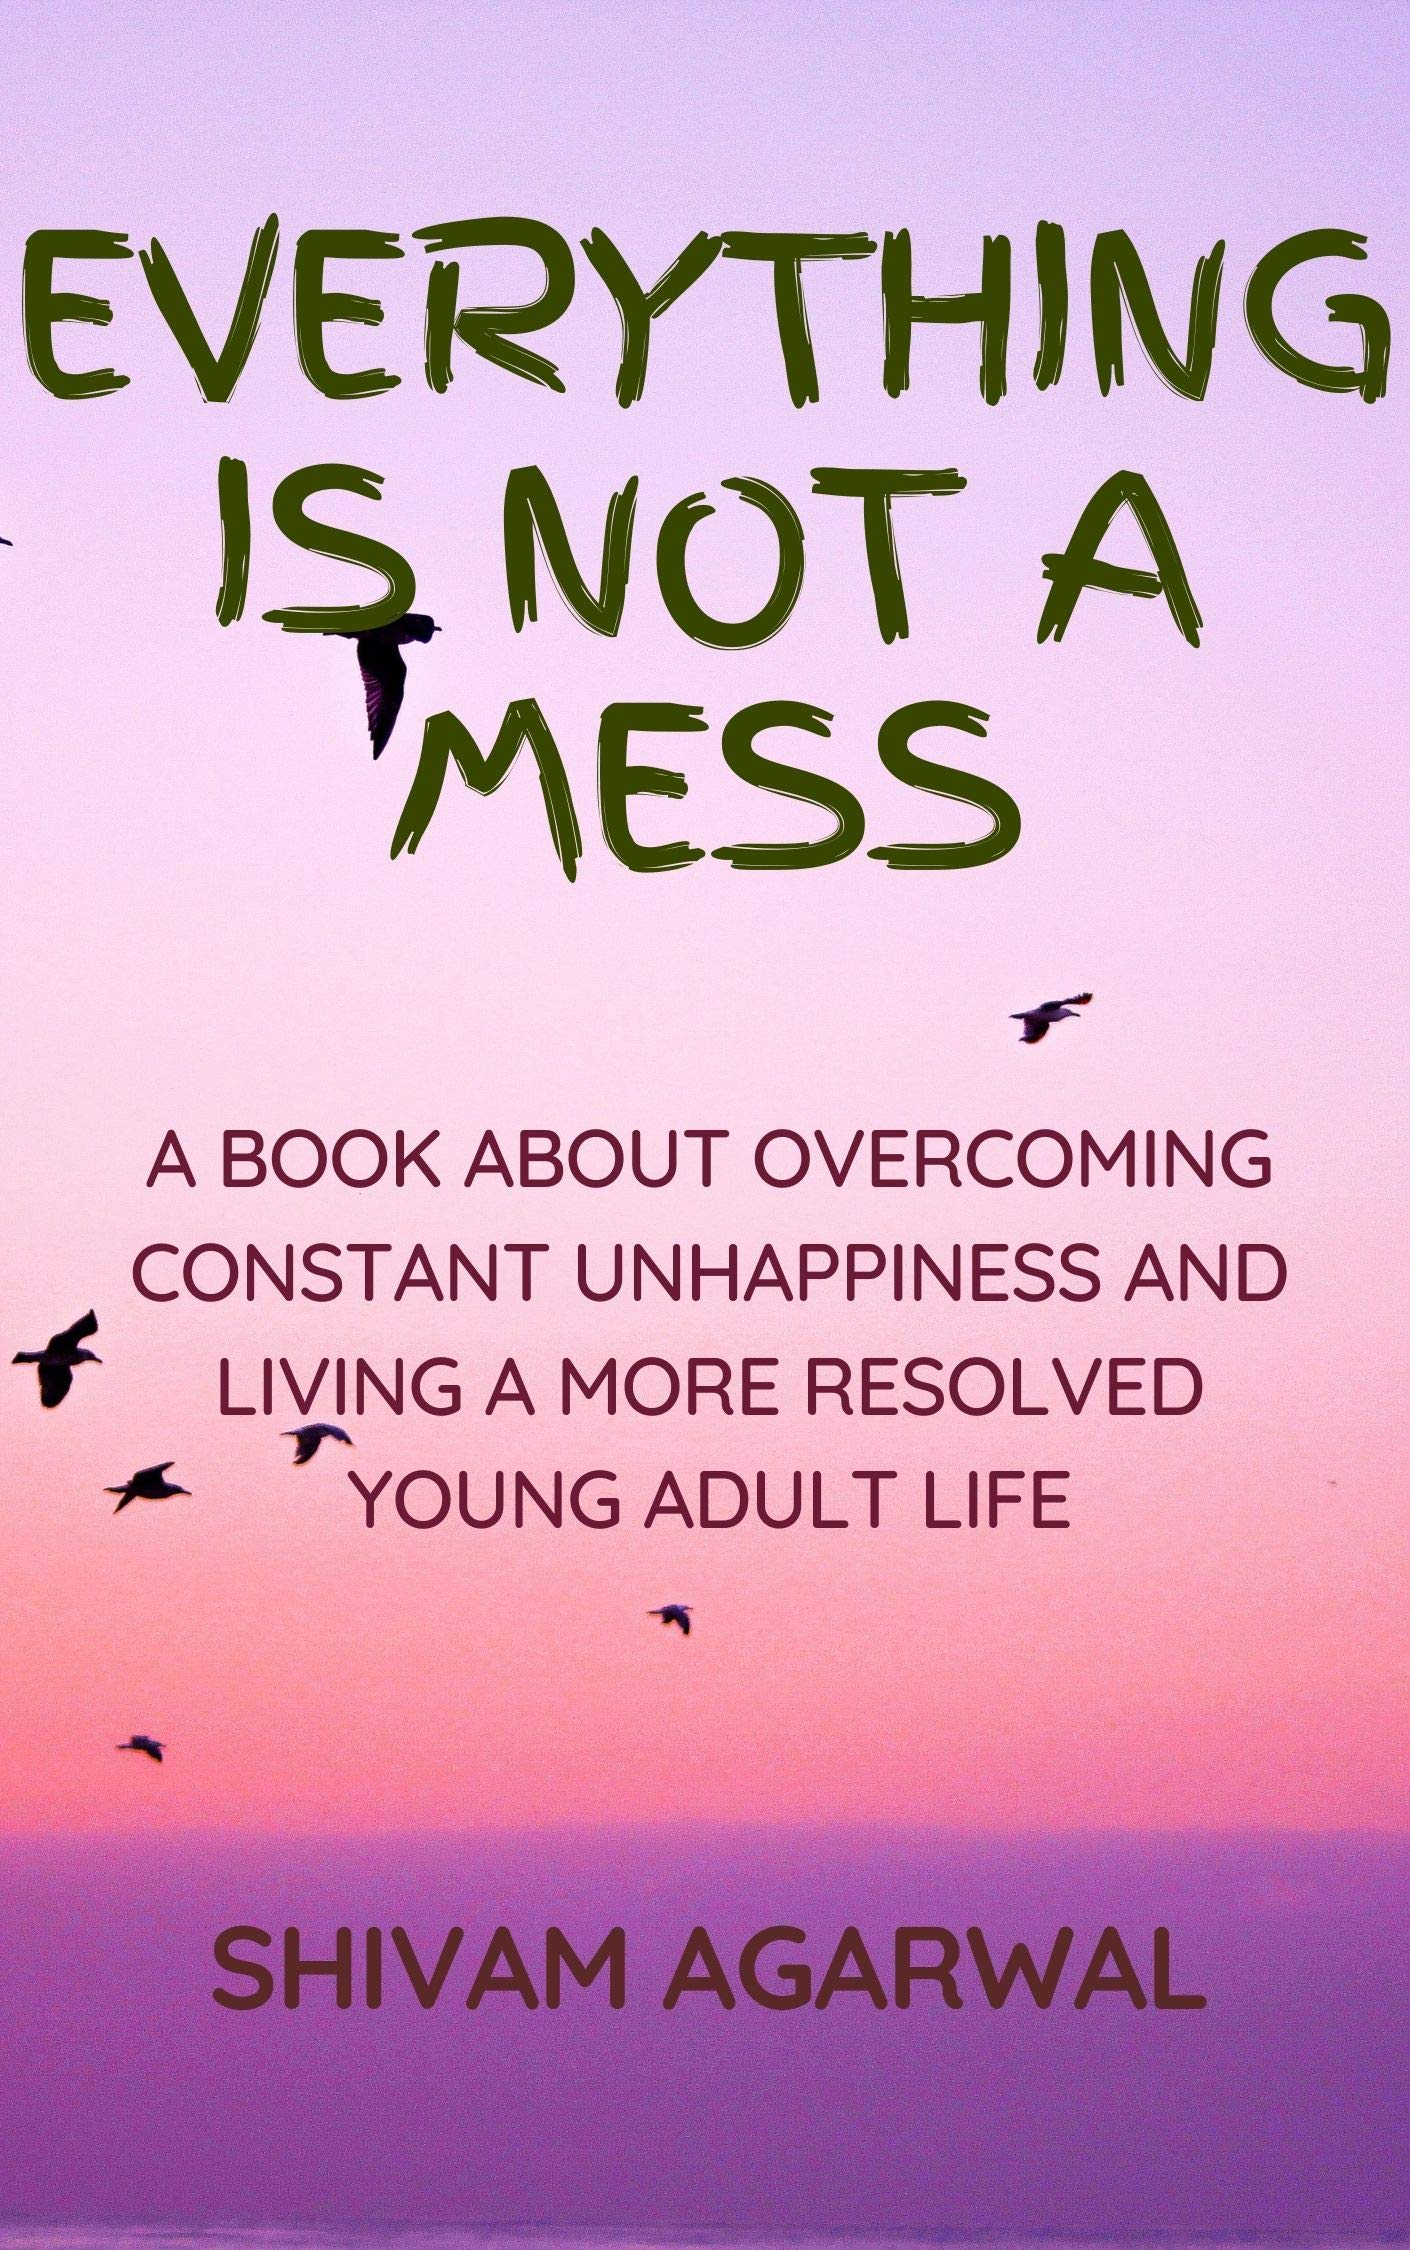 EVERYTHING IS NOT A MESS: A BOOK ABOUT OVERCOMING CONSTANT UNHAPPINESS AND LIVING A MORE RESOLVED YOUNG ADULT LIFE